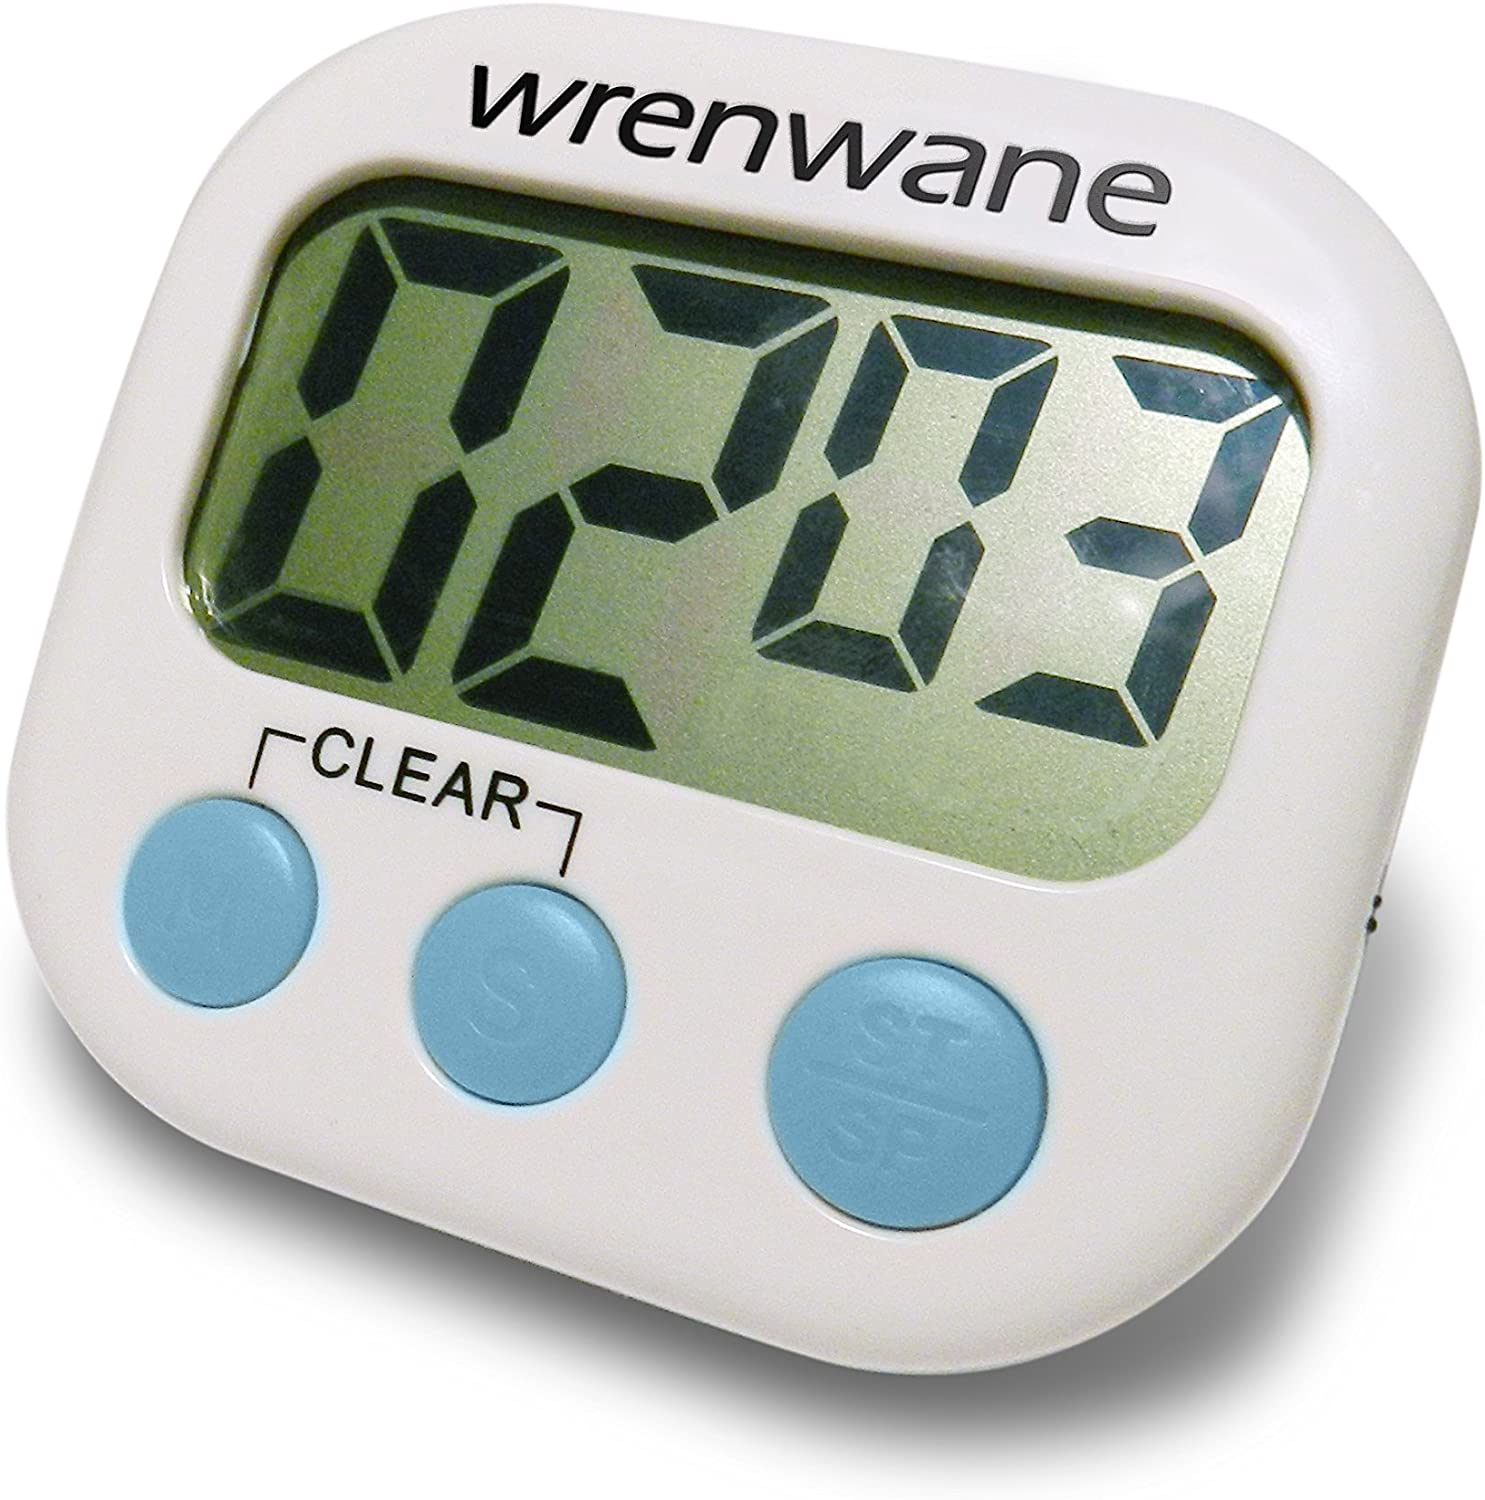 Wrenwane Digital Kitchen Timer (Upgraded), No Frills, Simple Operation, Big Digits, Loud Alarm, Magnetic Backing, Stand, White (2)